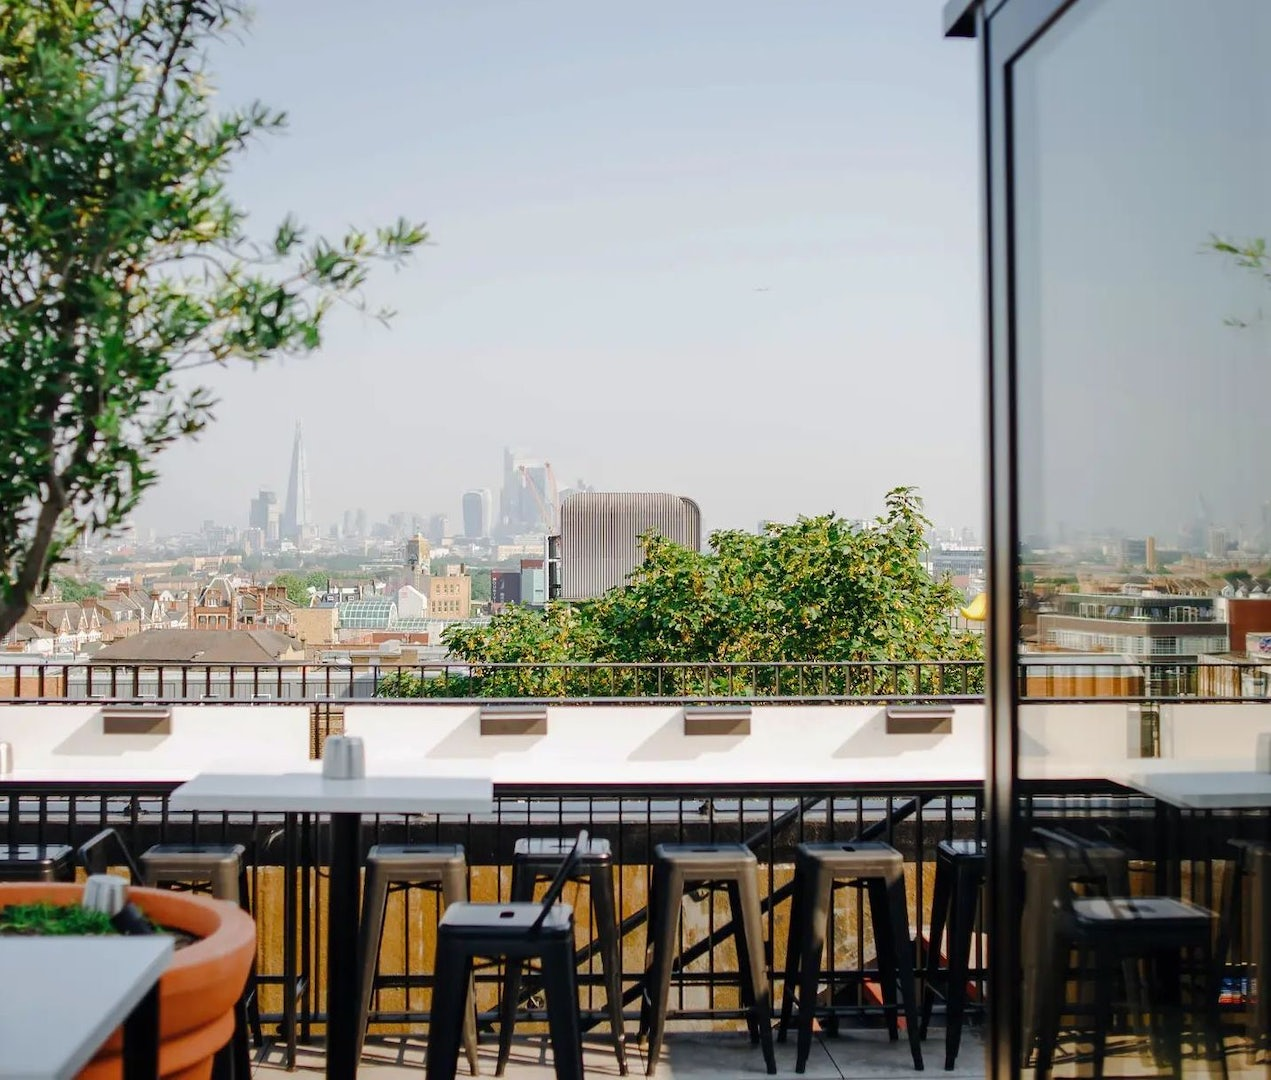 view from the terrace at Forza Wine over London city